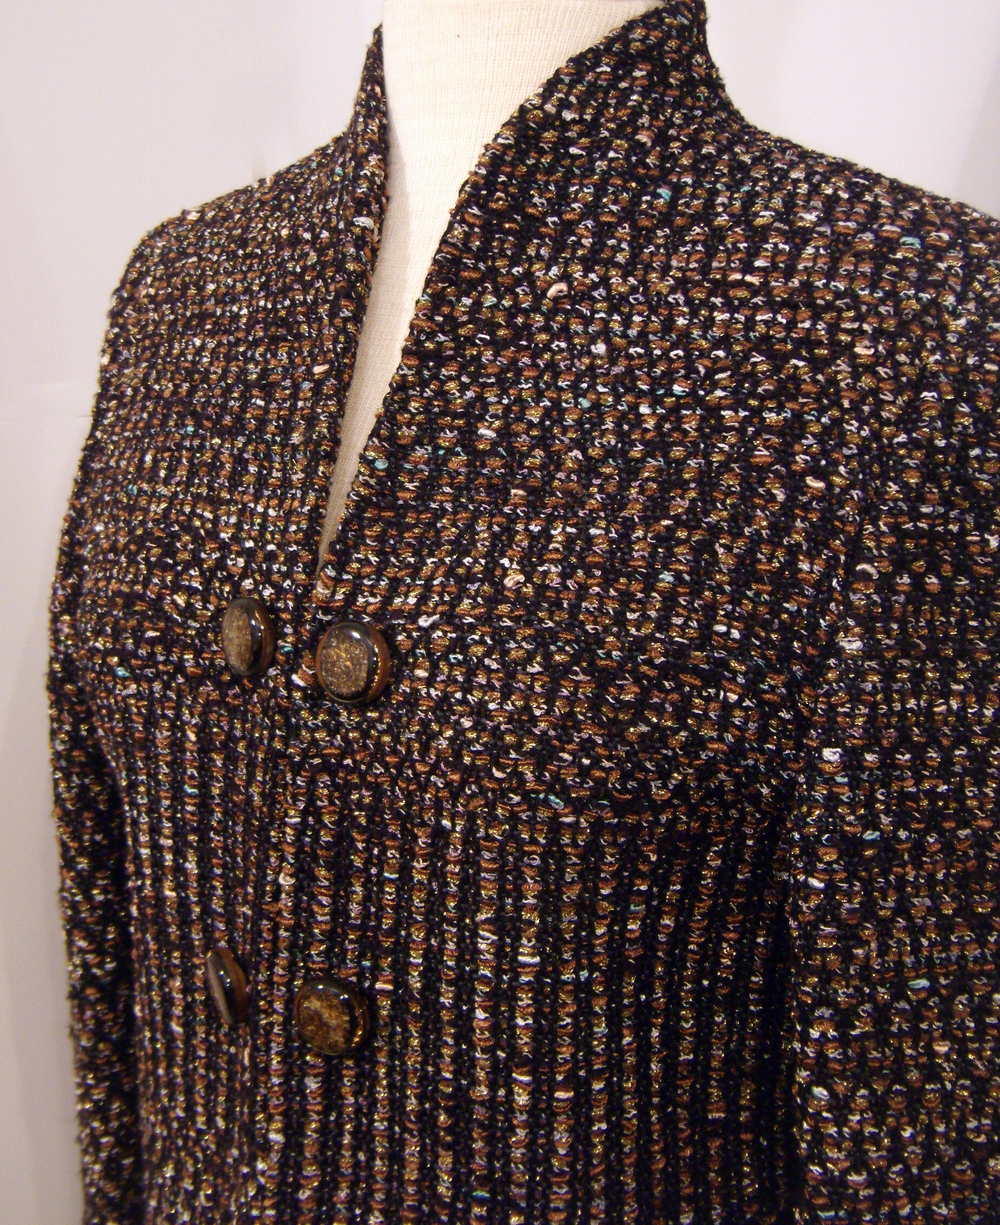 Hand Woven Jacket, Kathleen Weir-West, Fiber Art 14.JPG